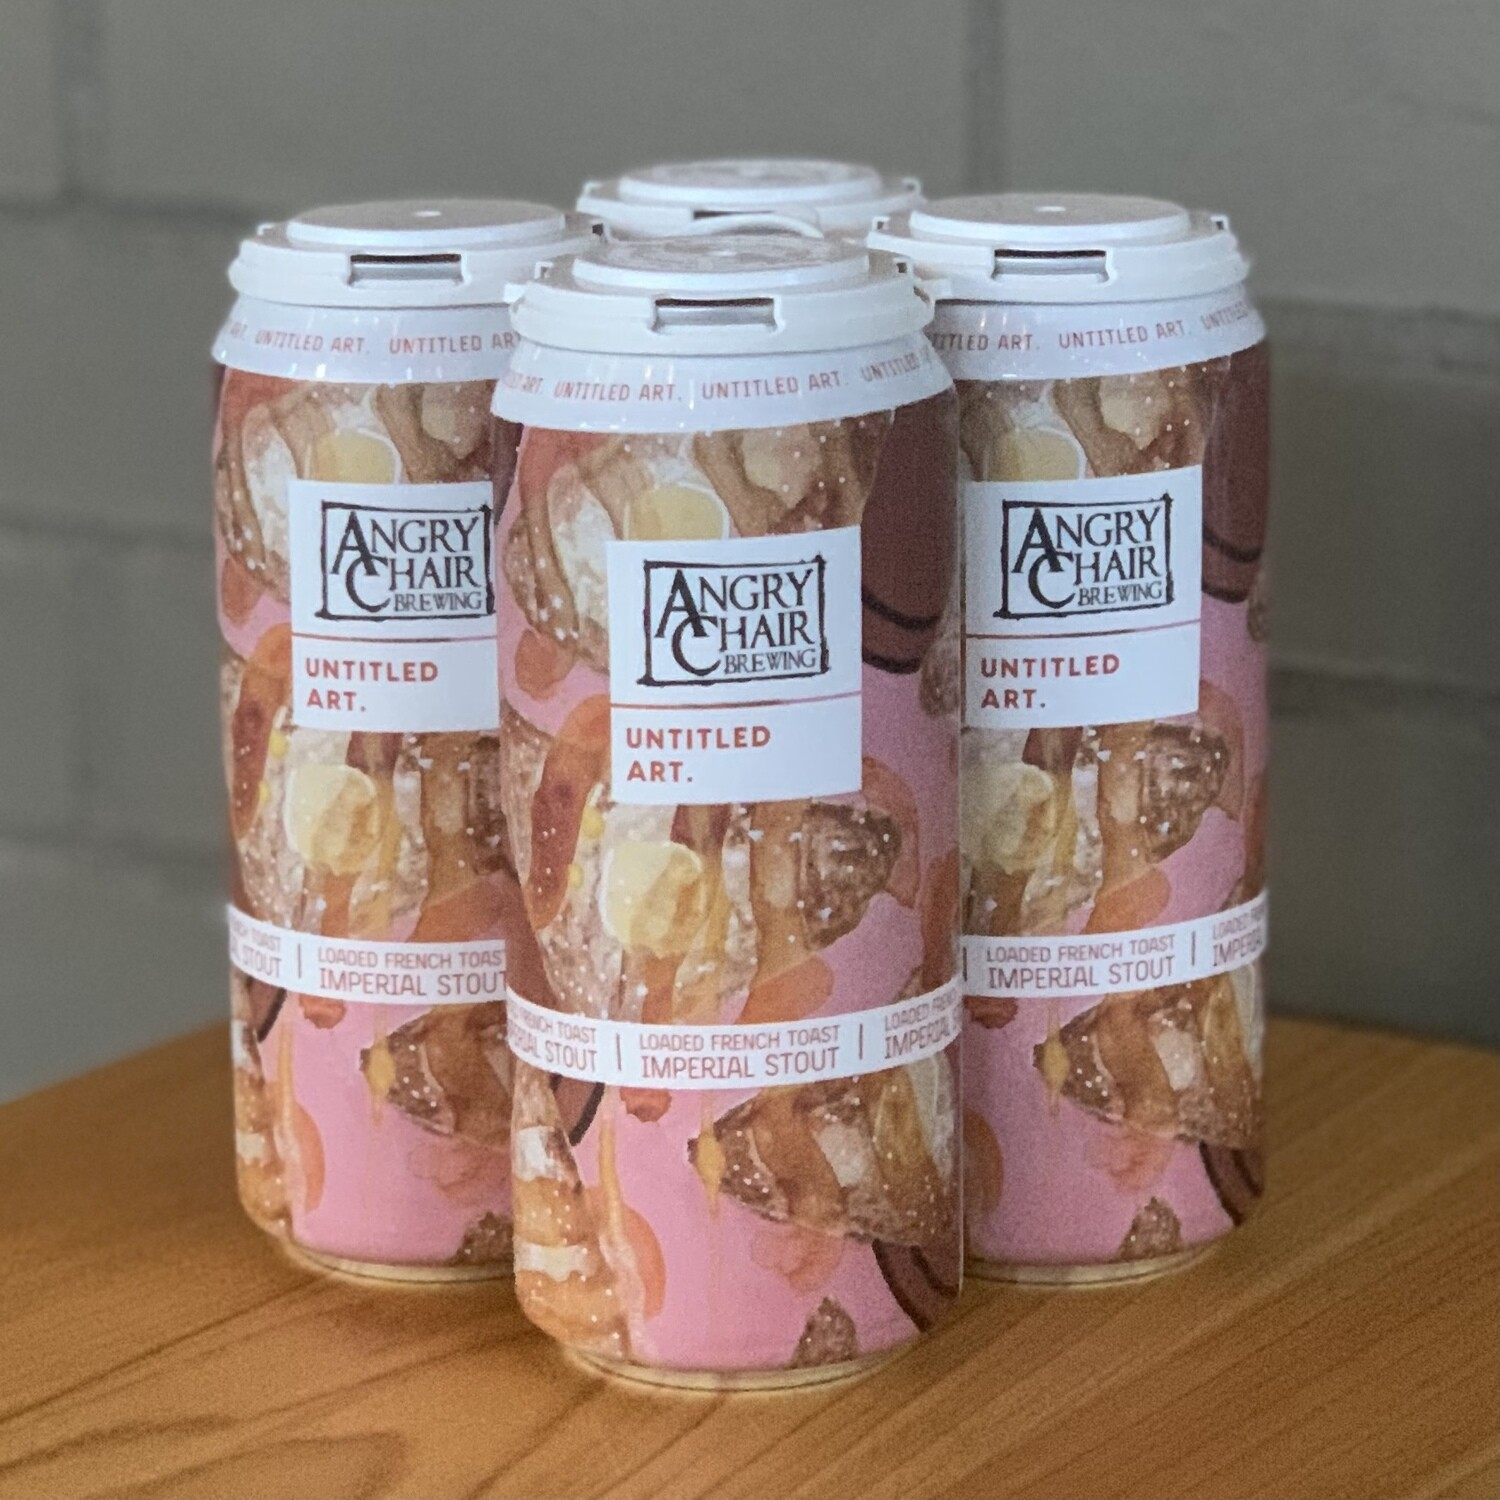 Untitled Art/Angry Chair Loaded French Toast Imperial Stout (4pk)